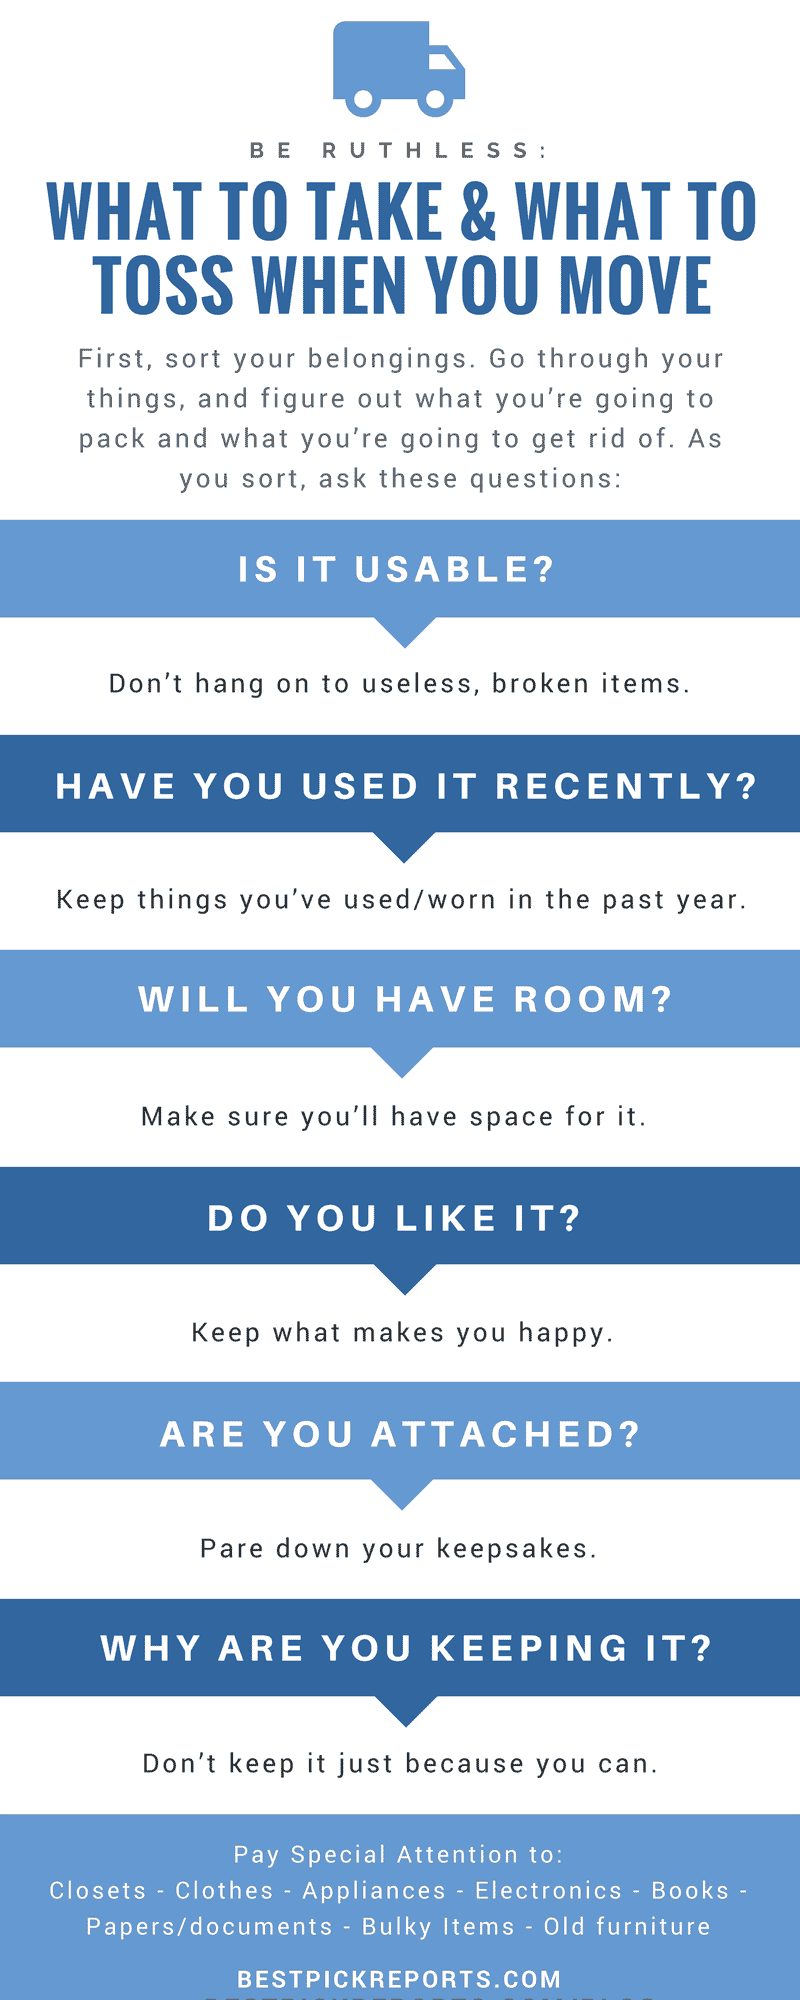 Infographic on Be Ruthless: What to Take and What to Toss When You Move